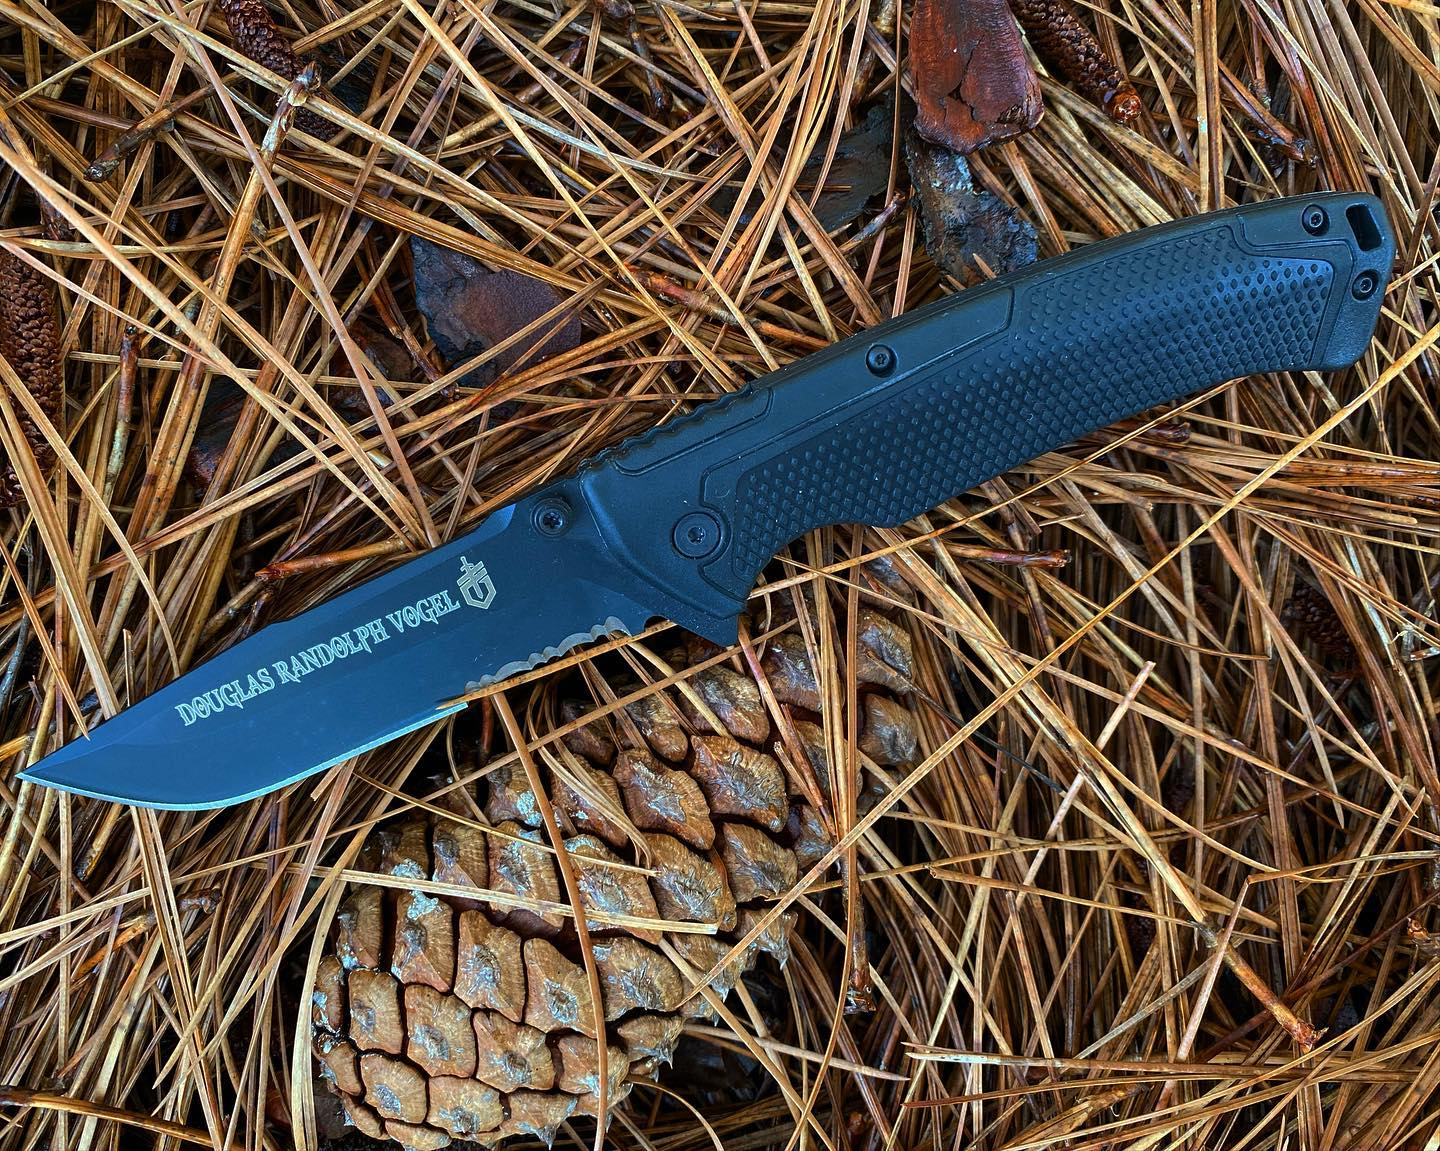 Gerber Decree Tactical half serrated knife 31-002718. Engraved in Gods of War font for a special customer. Has glass breaker on end of handle that is covered with a diamond texture rubber to secure that grip. Get your Decree today! #31-002718 #decree #decreetacticalknife #madeinamerica